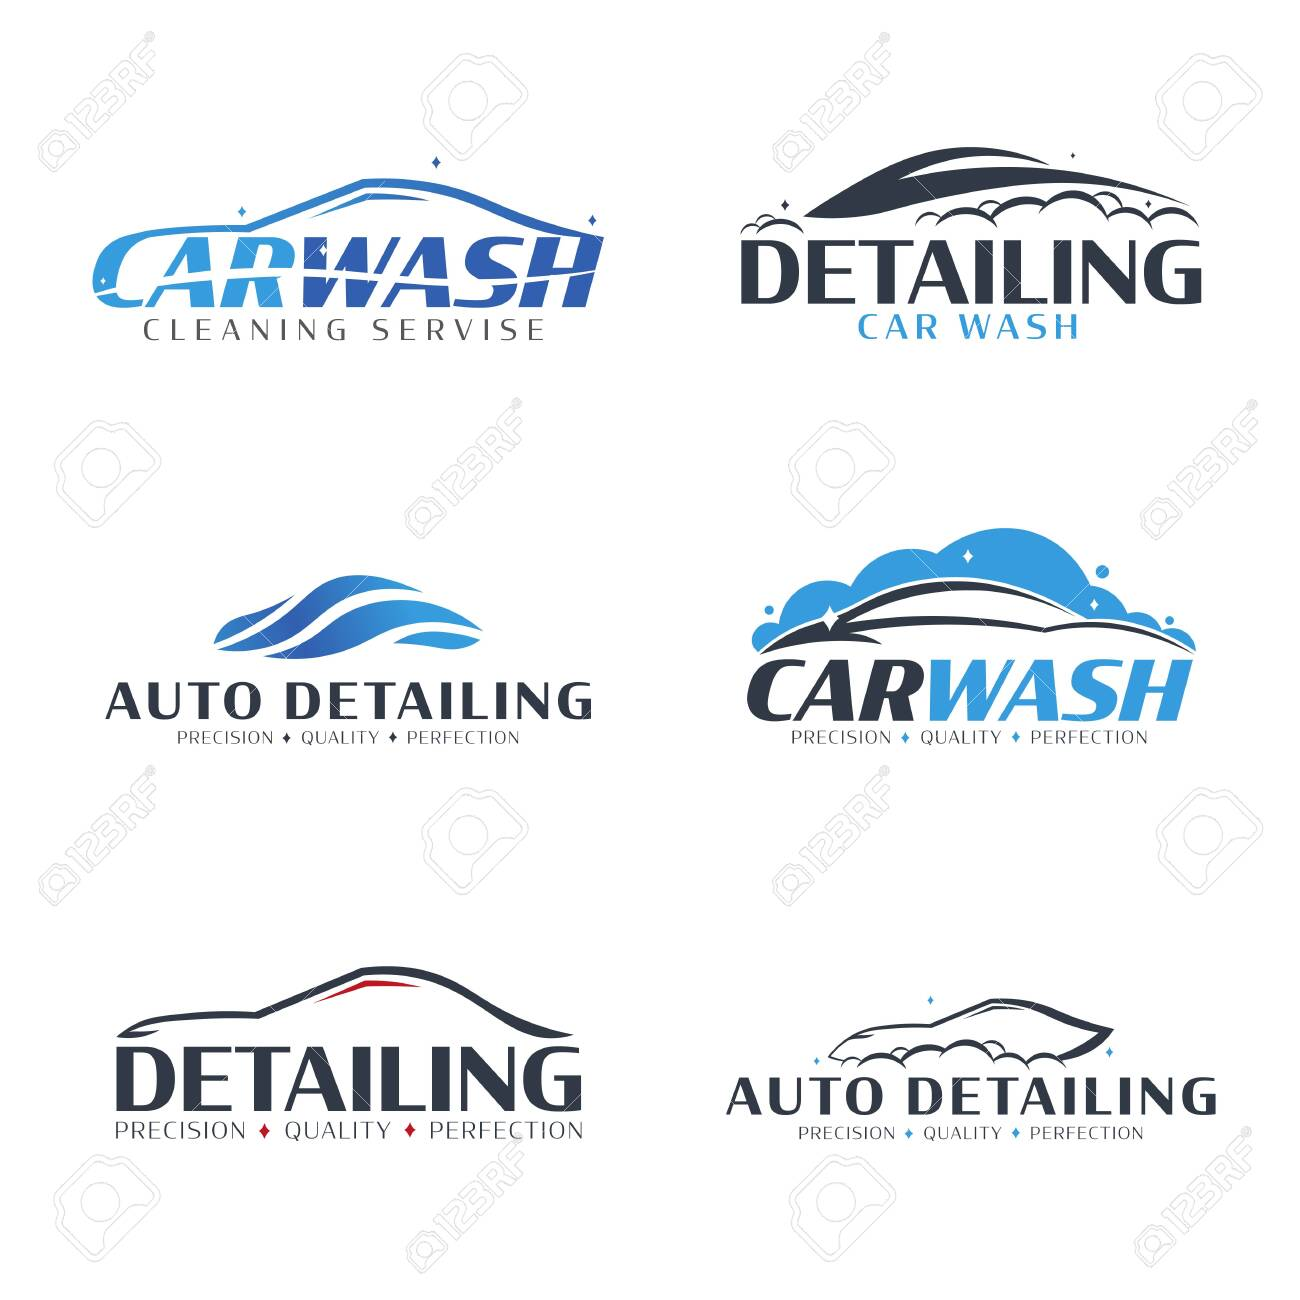 Set of Car Wash logos. Cleaning Car, Washing and Service. Vector logo with auto. - 152107692